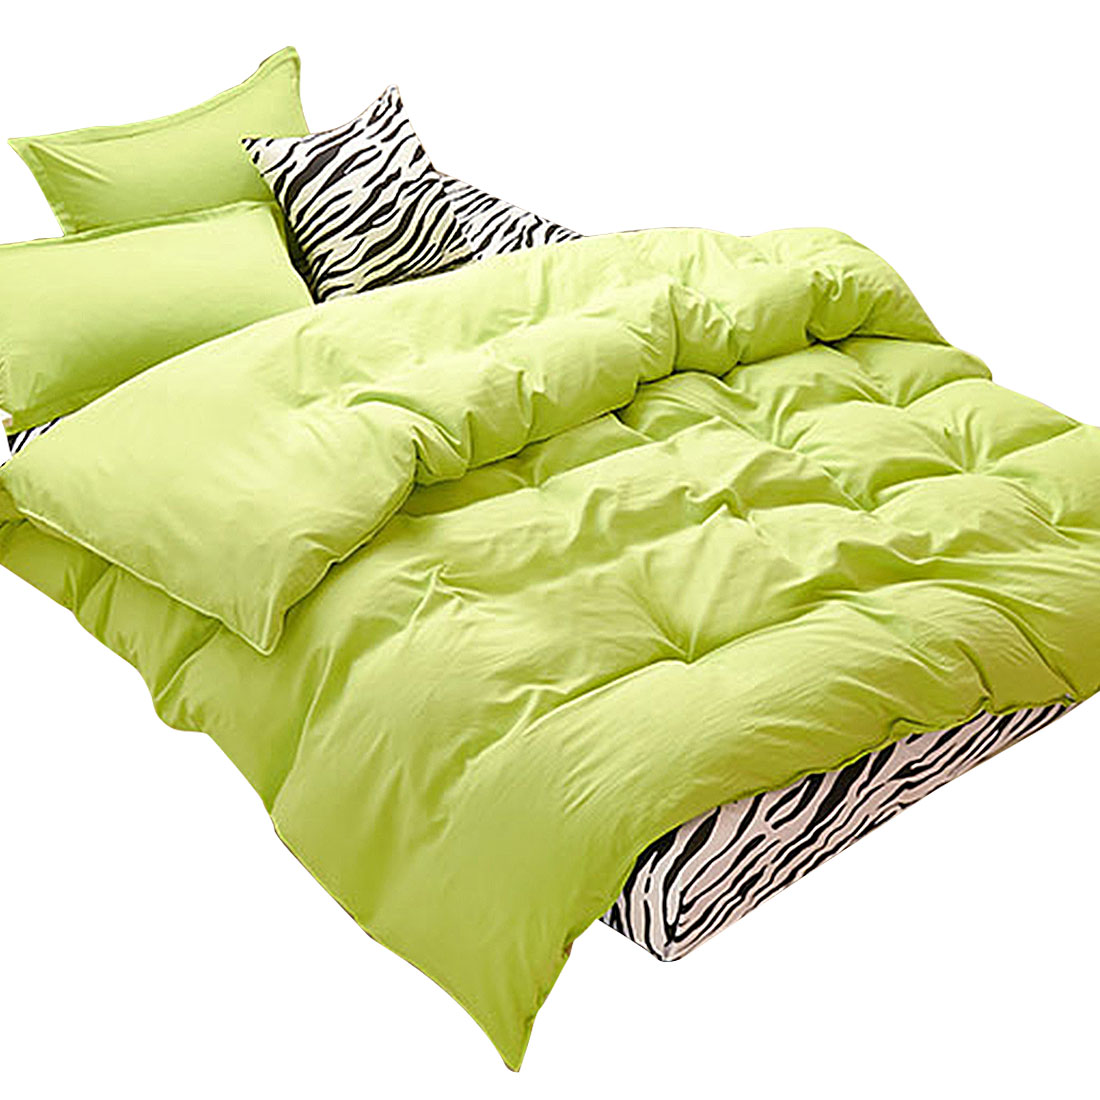 Bedroom Duvet Quilt Cover Pillowcase Bedding Set Bedclothes Green Double Size